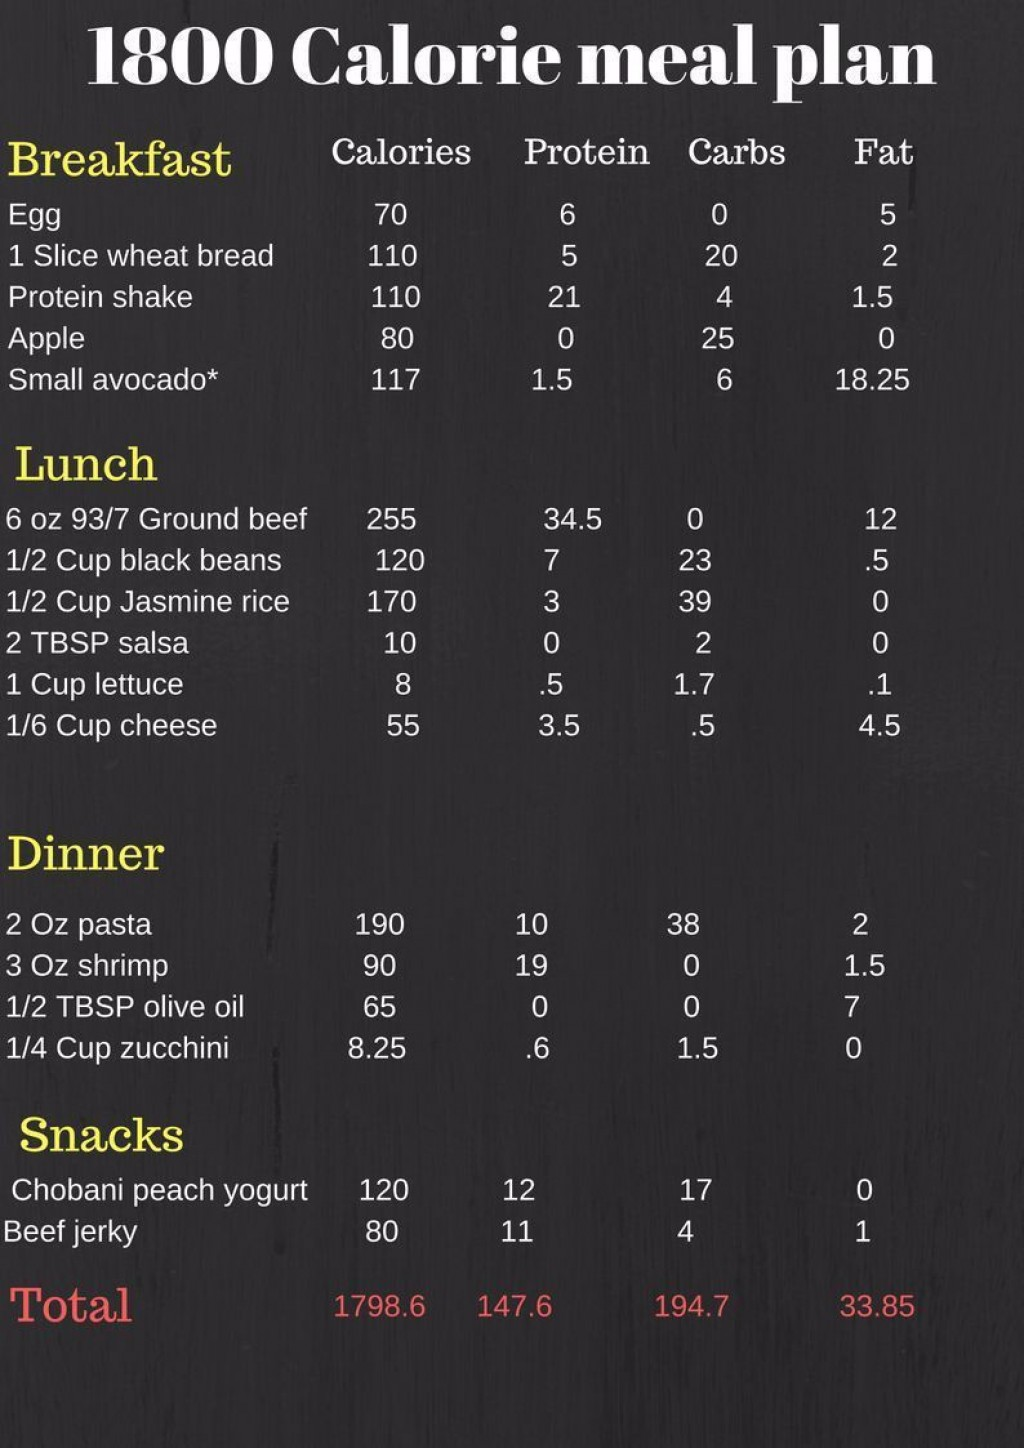 002 Awful Sample 1800 Calorie Meal Plan Pdf High Definition Large